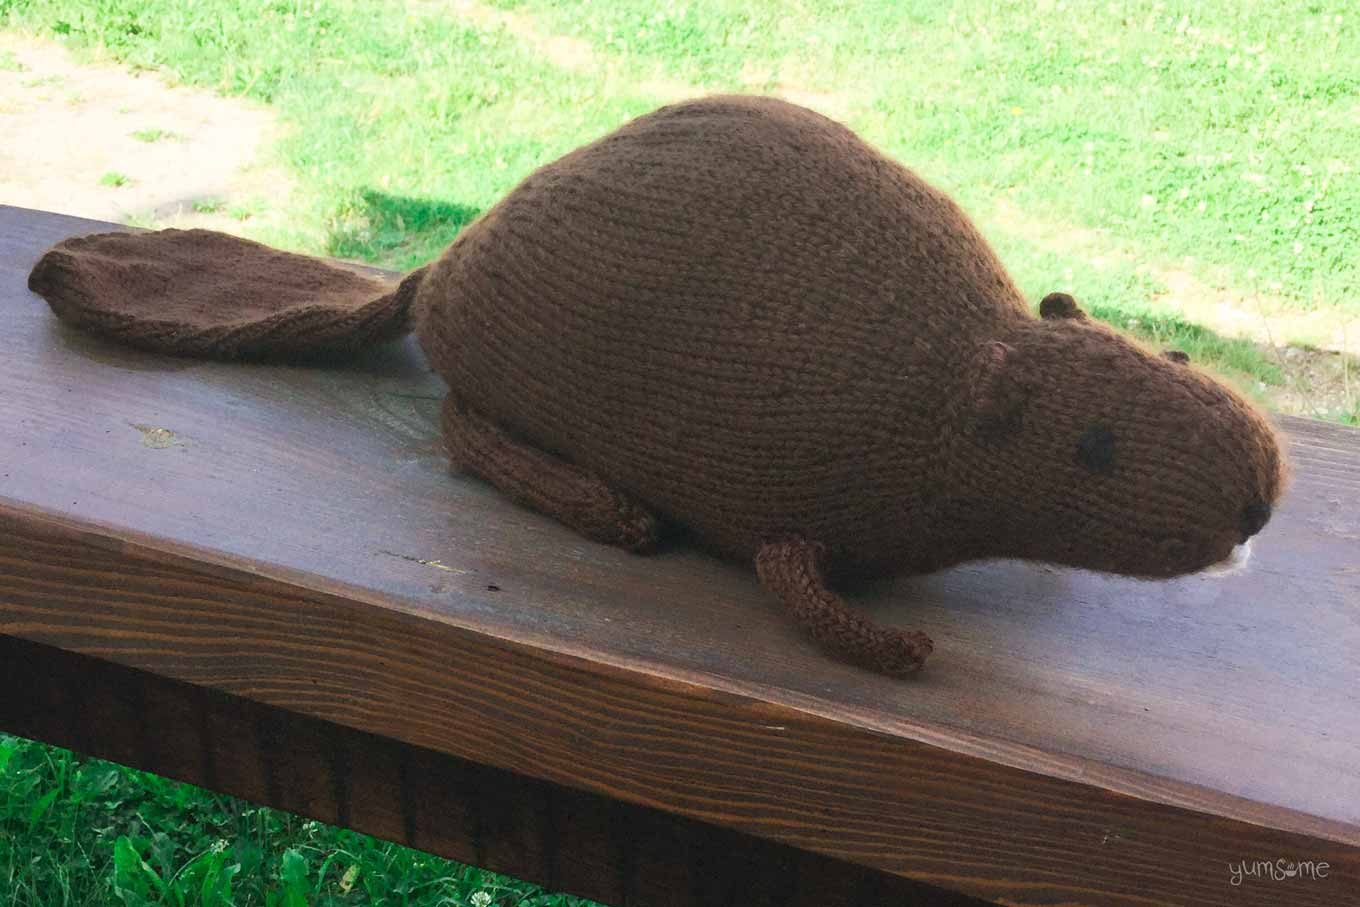 Nora the beaver, sitting on a wooden fence.